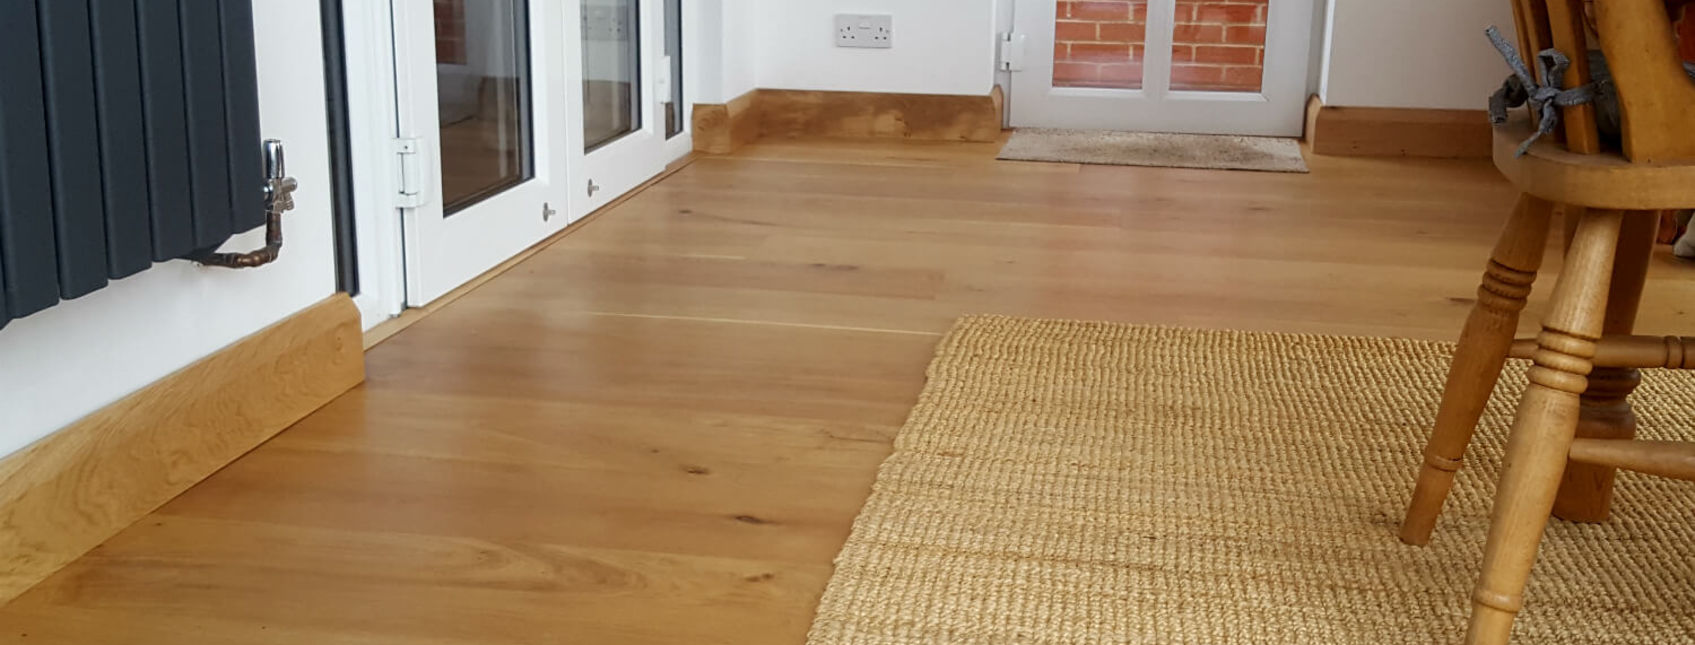 engineered wood flooring in weymouth, dorset